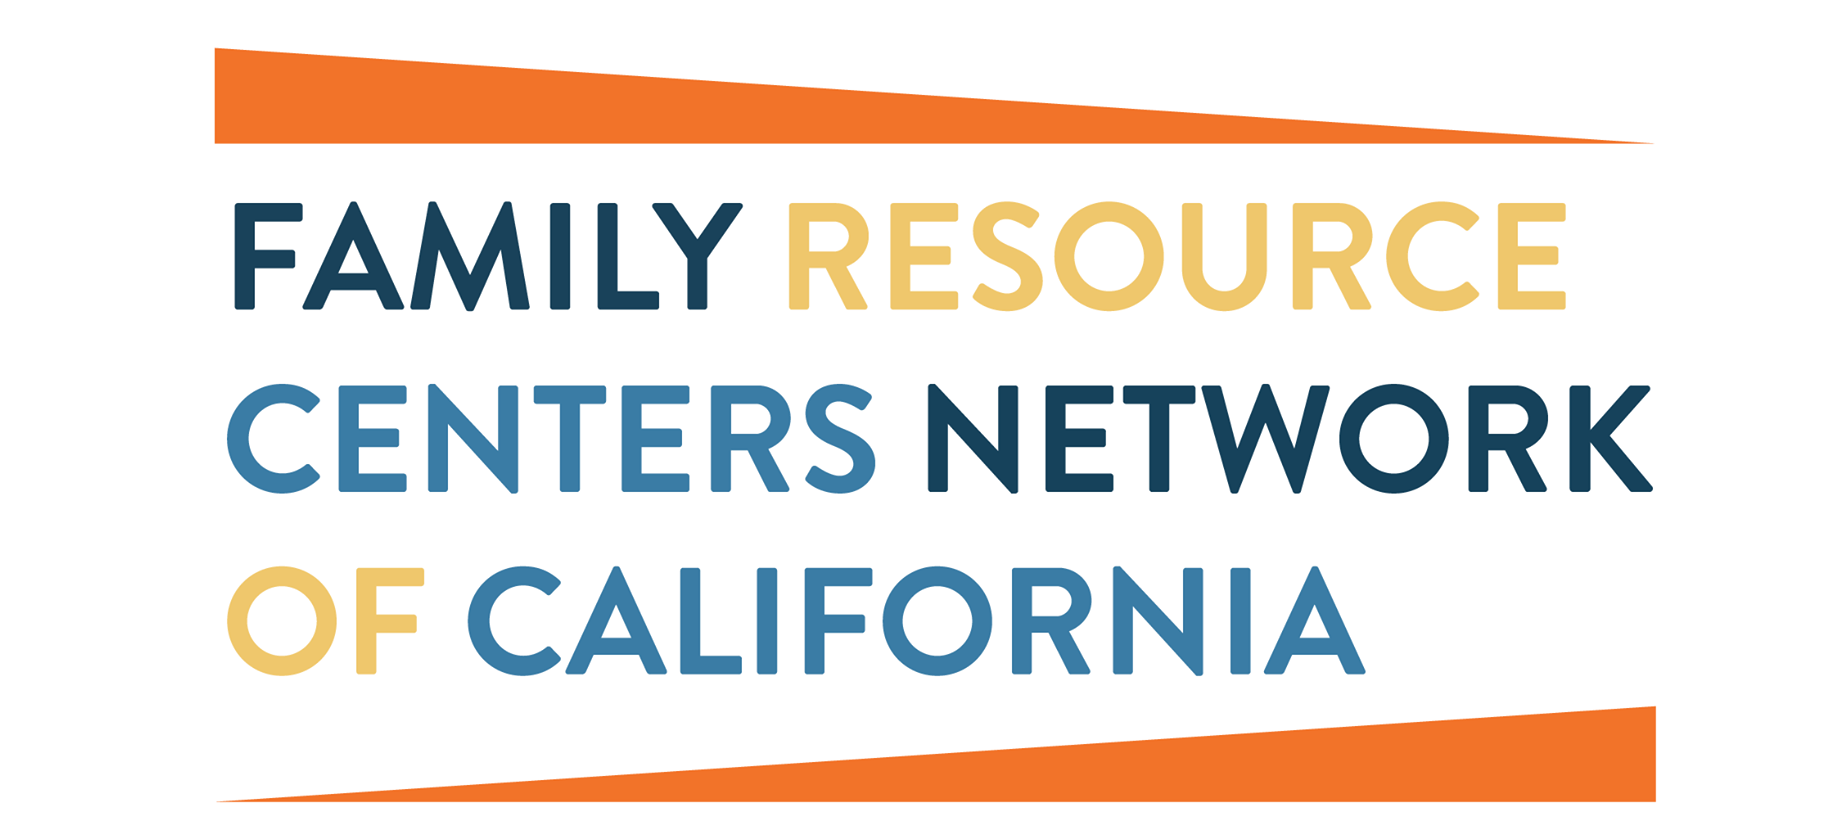 Family Resource Centers Network of CA logo. Orange triangles with blue, black and yellow font